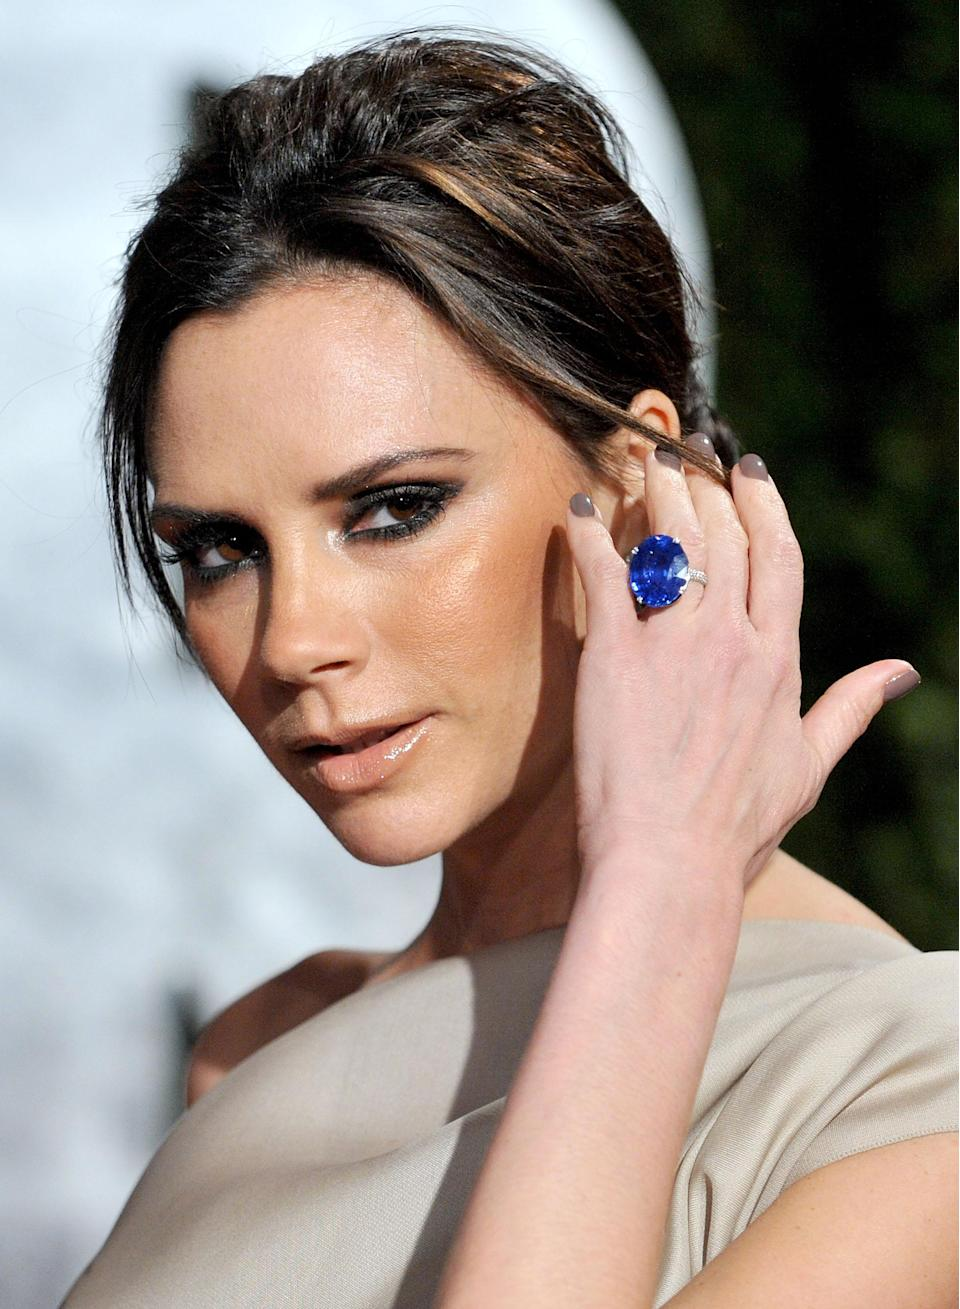 <p><strong>The specs: </strong>Continuing her penchant for large rare gems, David gifted Victoria this epic, oval-cut sapphire set on a platinu band of white diamonds in 2010. Wear it proudly, VB.<br><strong>The price: </strong>Definitely more than ten houses.<br>[Photo: Getty] </p>